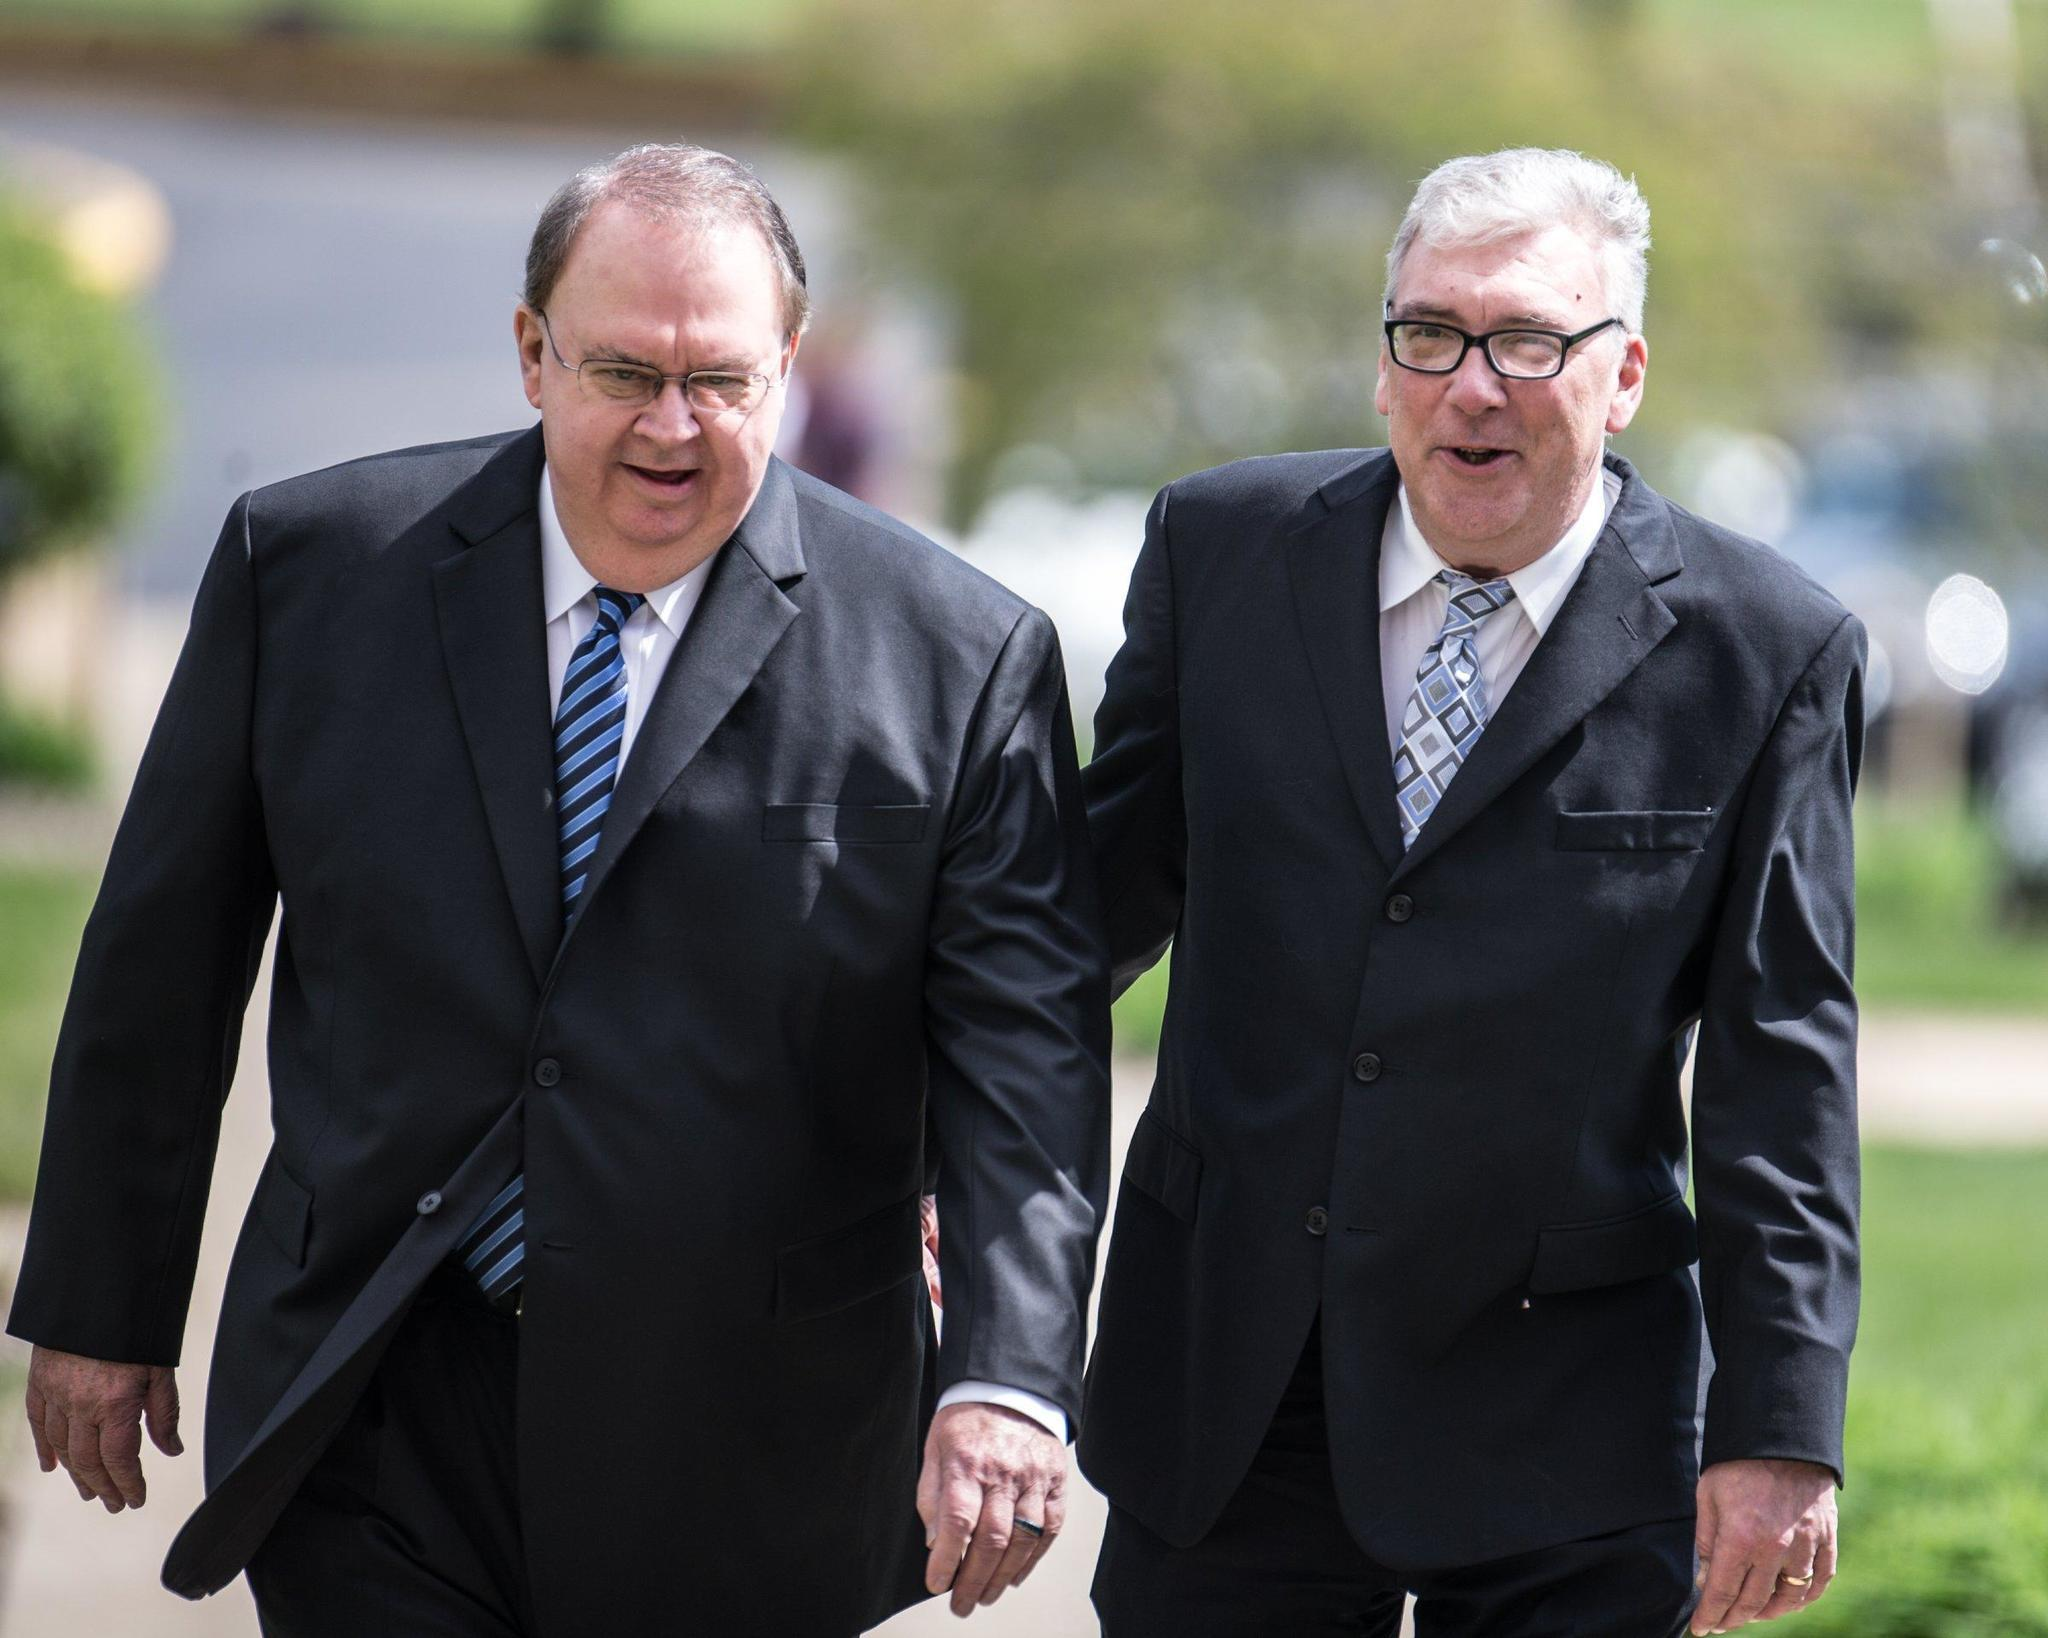 Ex-Lake County, Ind., Sheriff John Buncich to be sentenced in January on bribery, wire fraud conviction